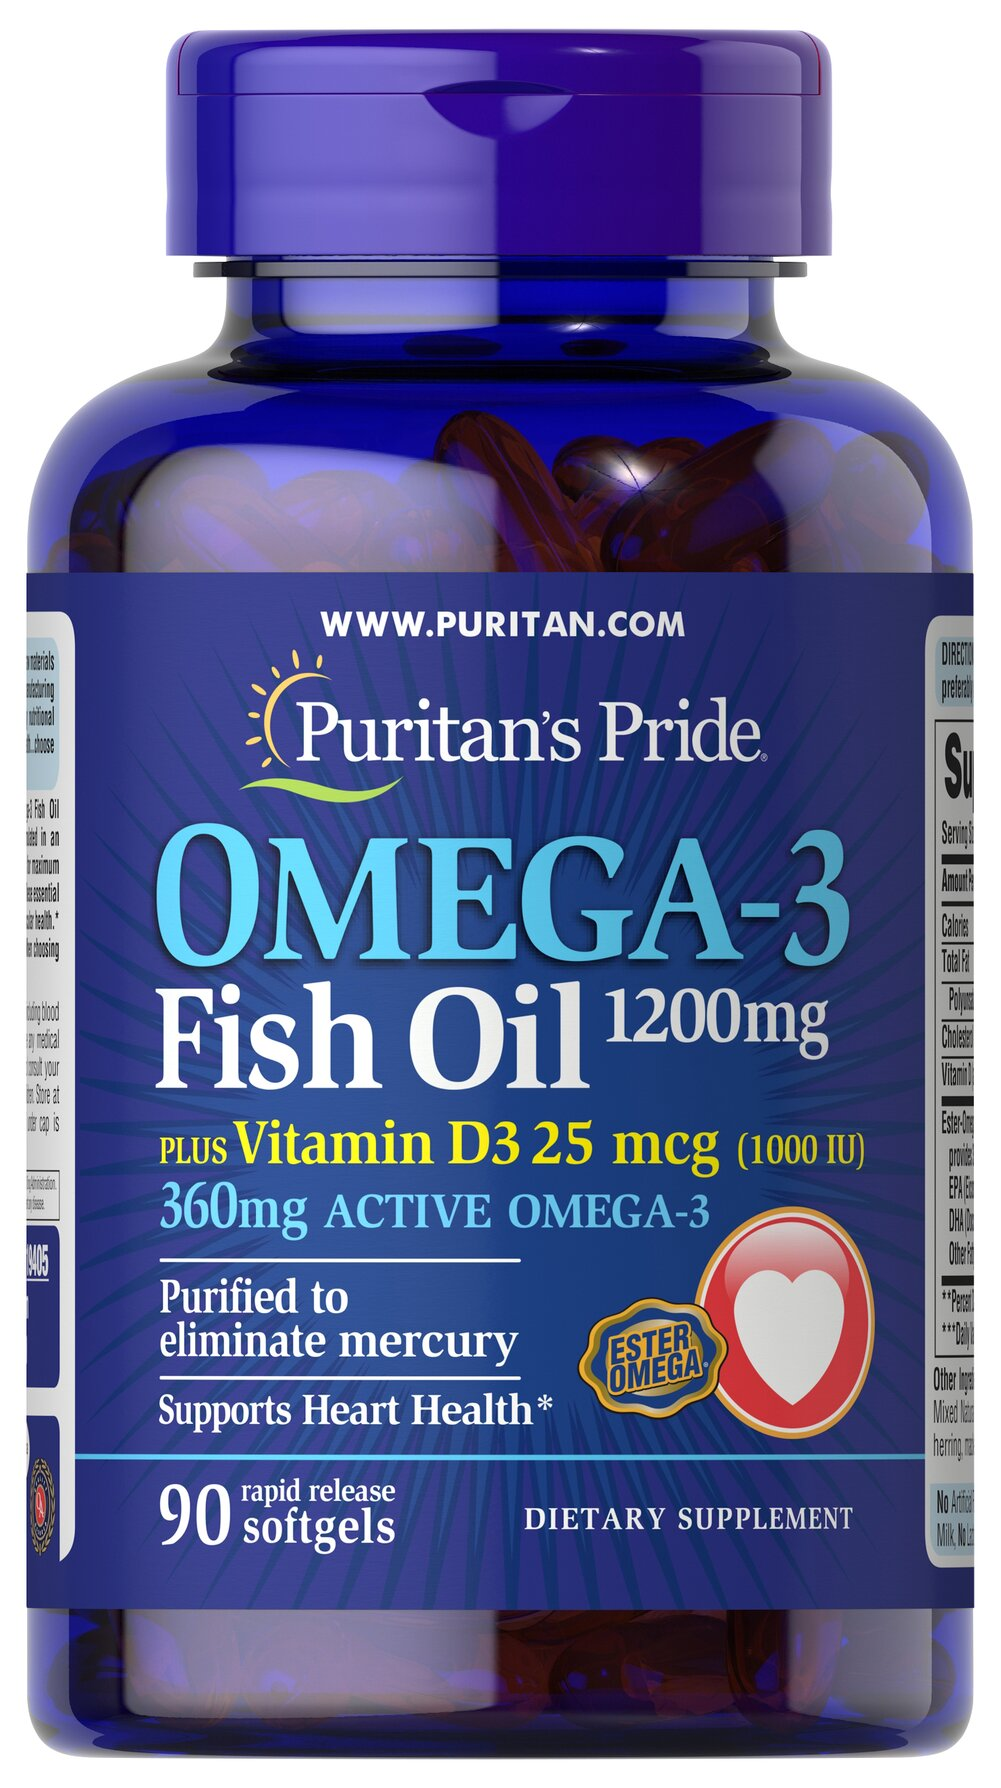 Omega 3 Fish Oil 1200 mg  plus Vitamin D3 1000 IU  90 Softgels 1200 mg/1000 IU $19.99